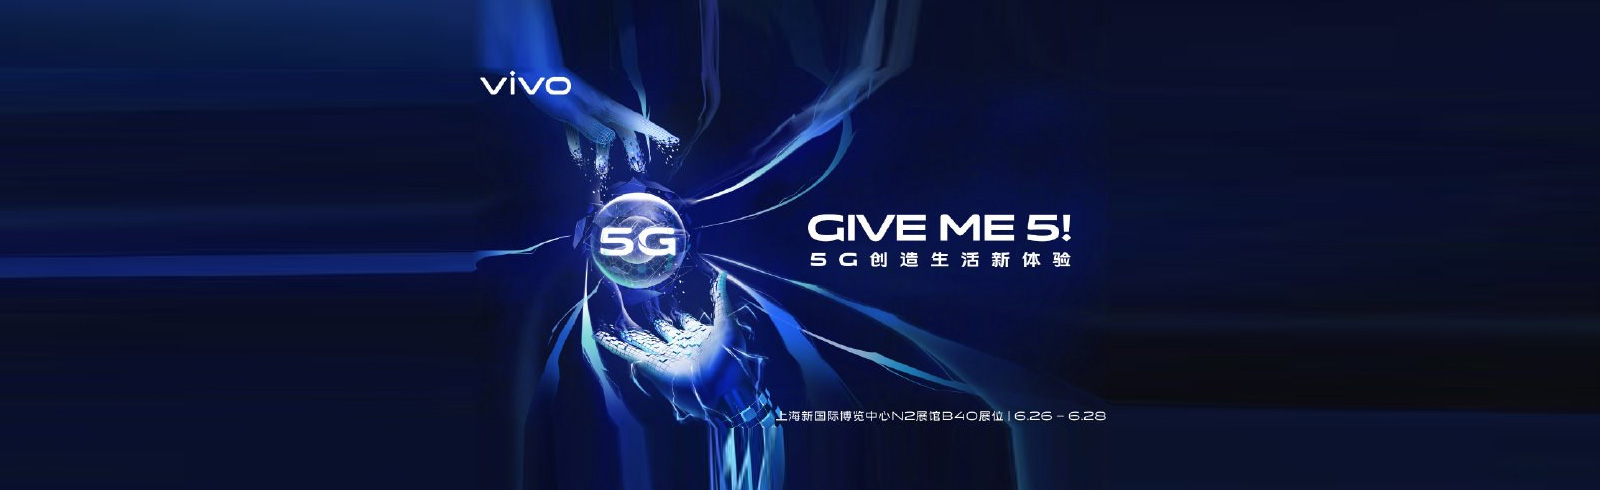 Vivo will present a 5G smartphone at the MWC 2019 in Shanghai